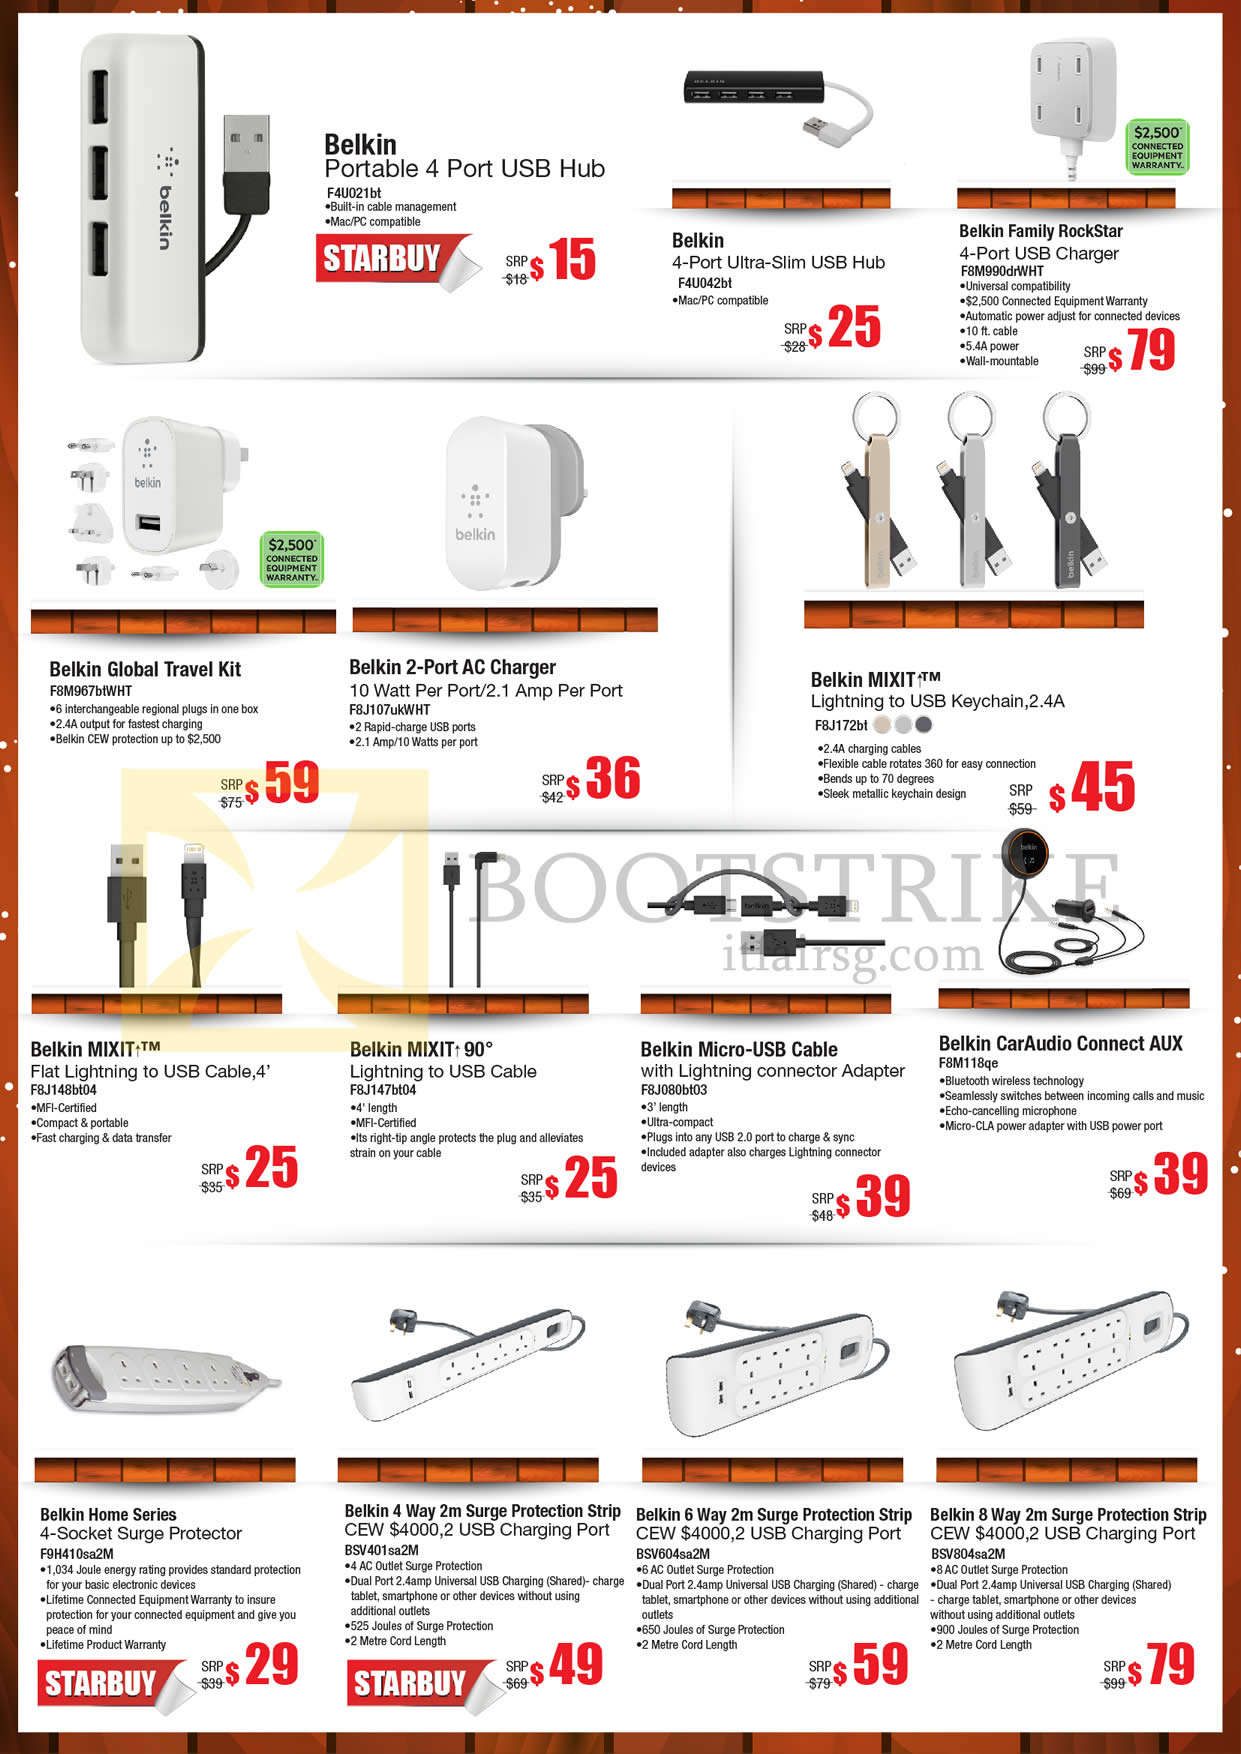 SITEX 2015 price list image brochure of Nubox Belkin USB Hub, RockStar USB Charger, AC Charger, Mixit Lightning To USB Cable, CarAudio Connect AUX, Surge Protection Strip, Home Series Surge Protector